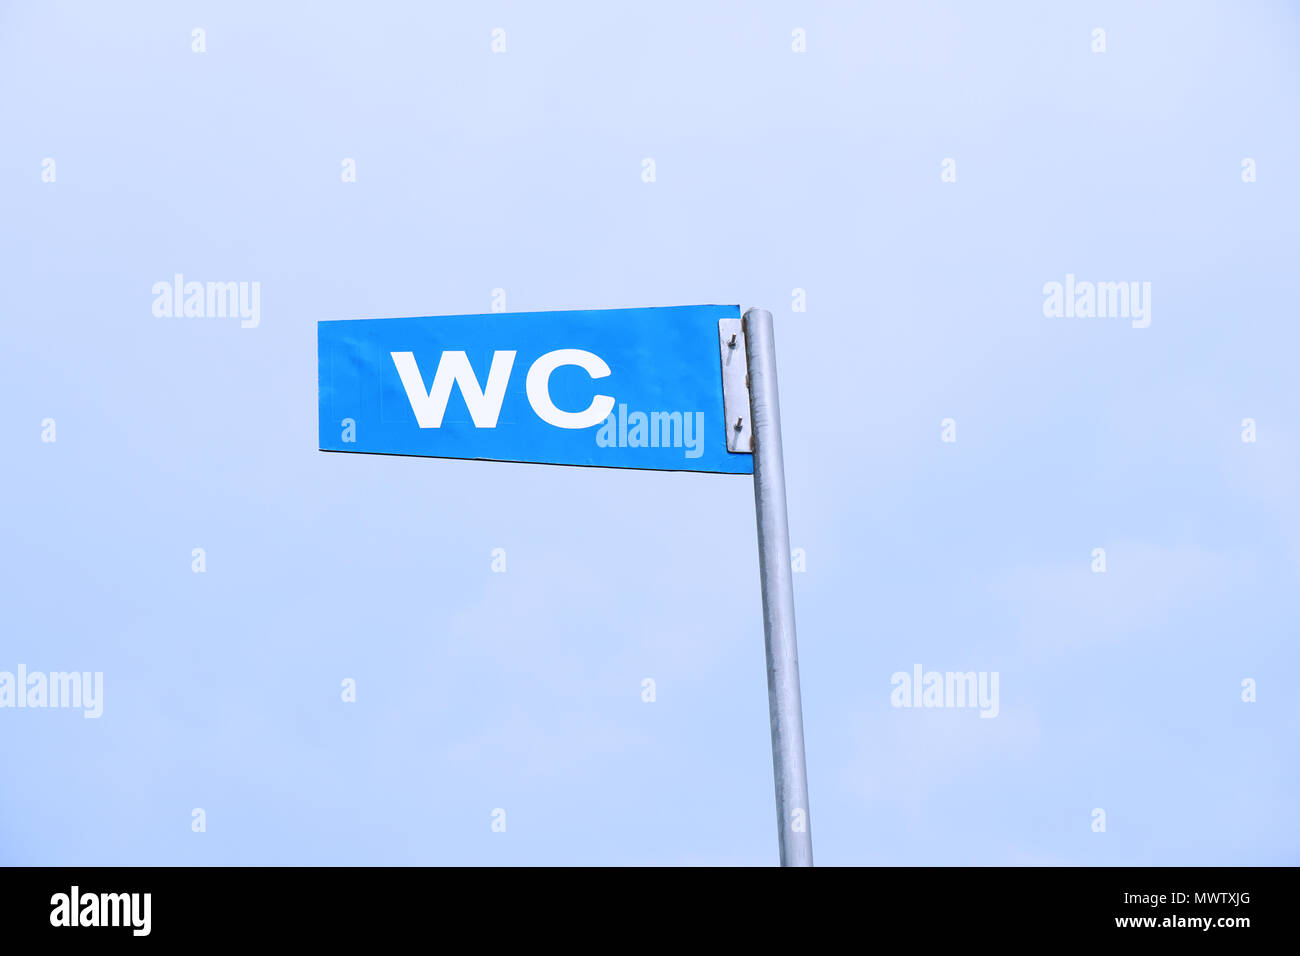 WC sign for public toilet or restroom against sky - Stock Image